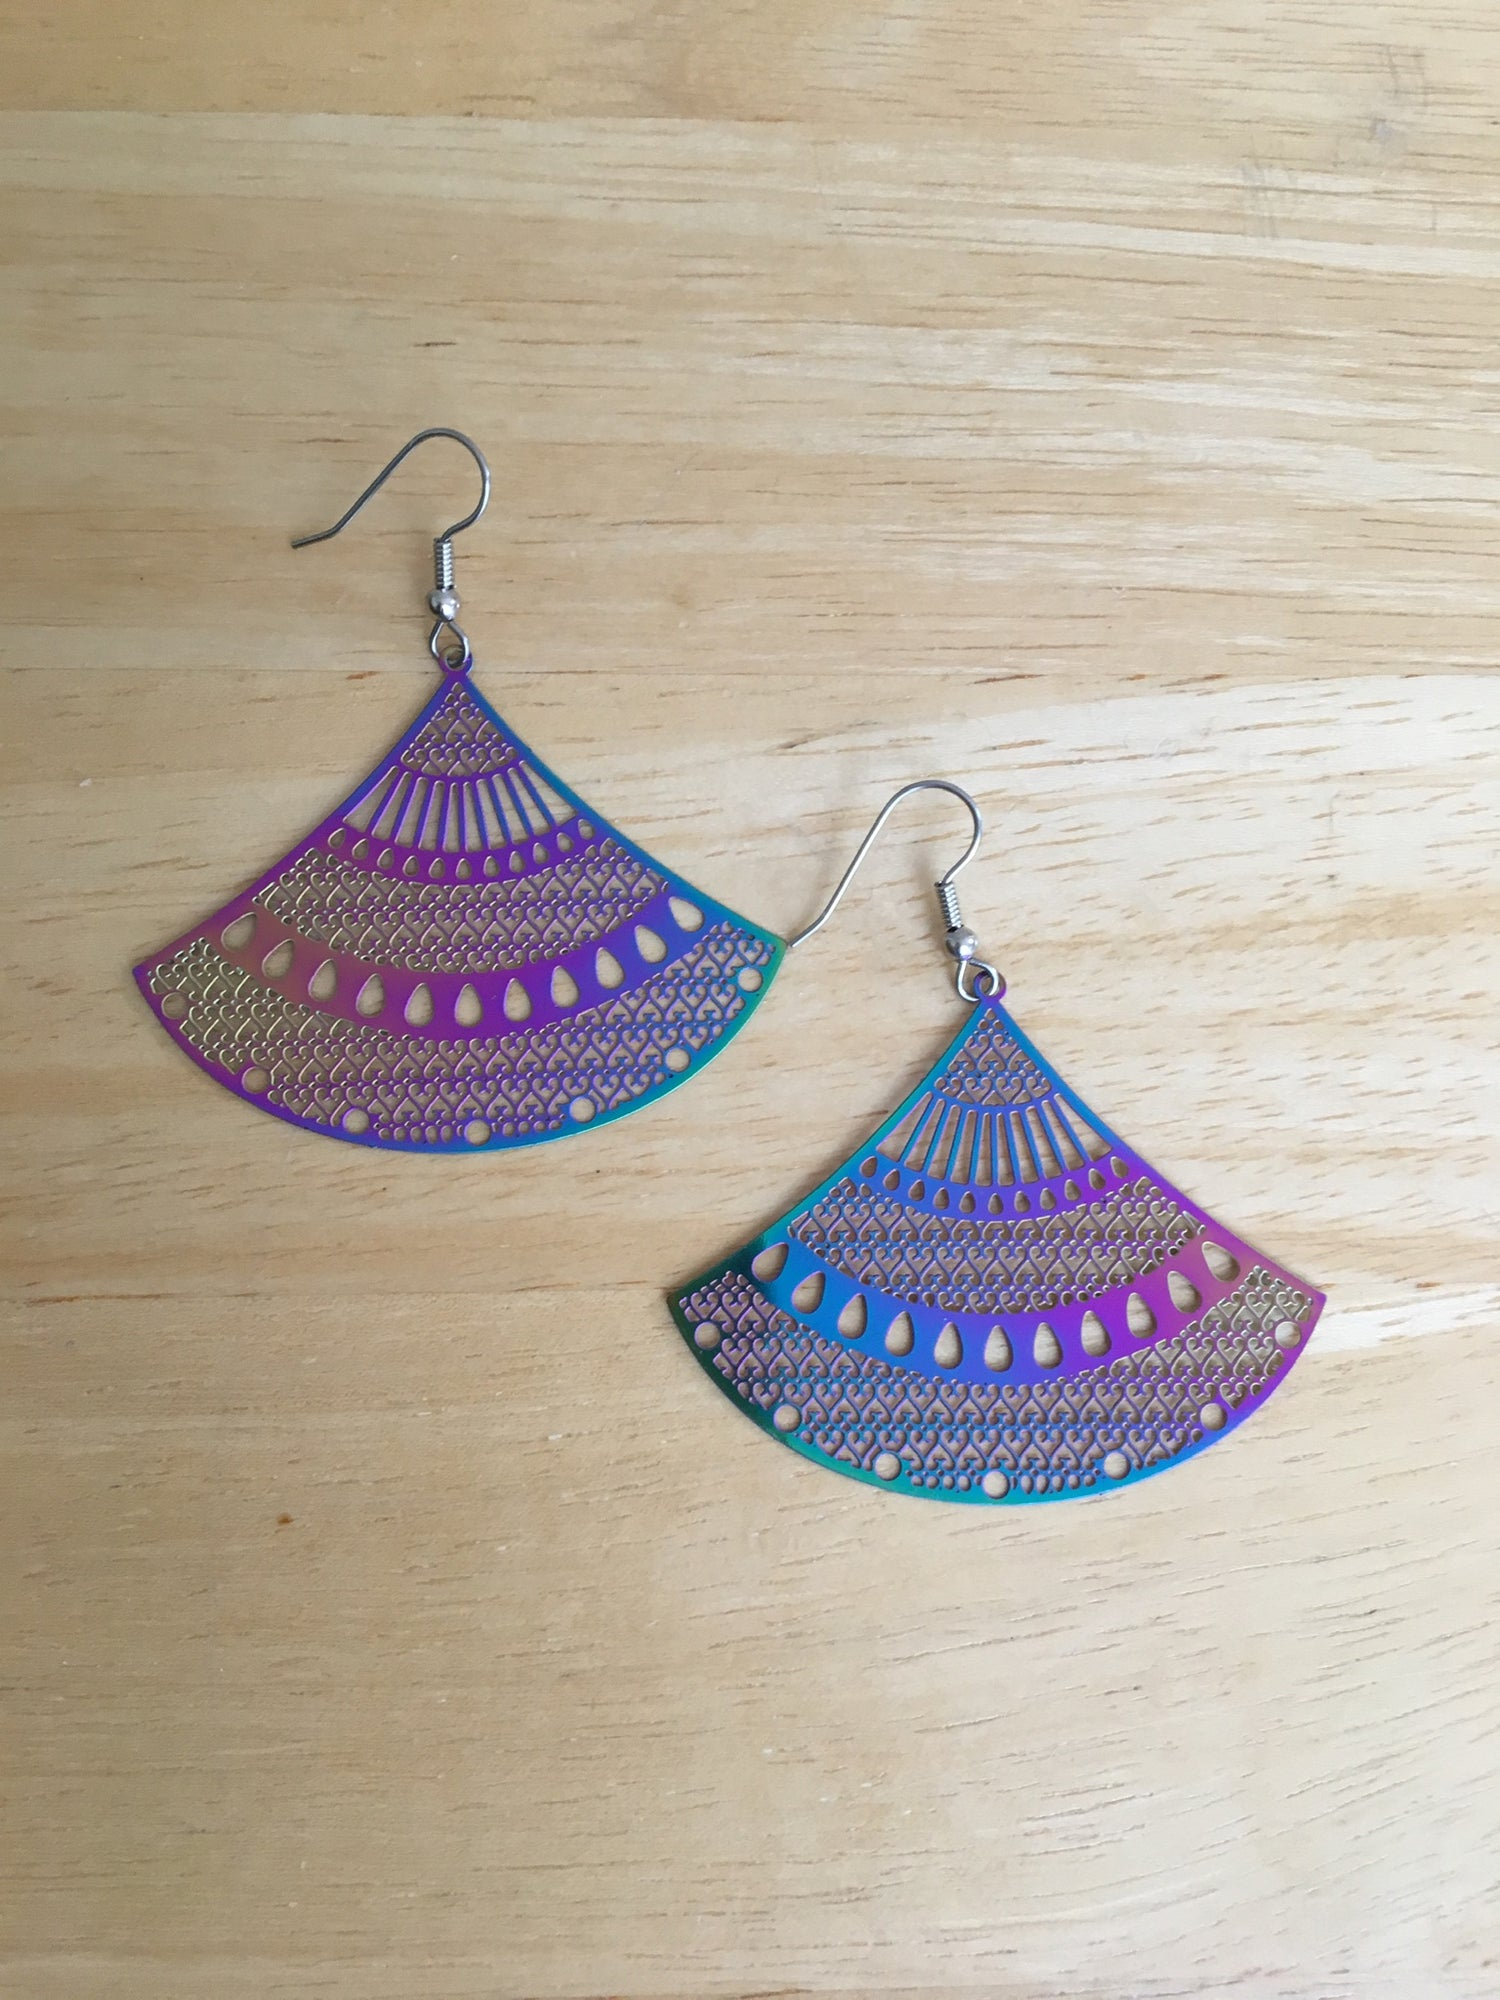 Image of Metal Earrings - Leaf, Fan, and Geometric Shapes